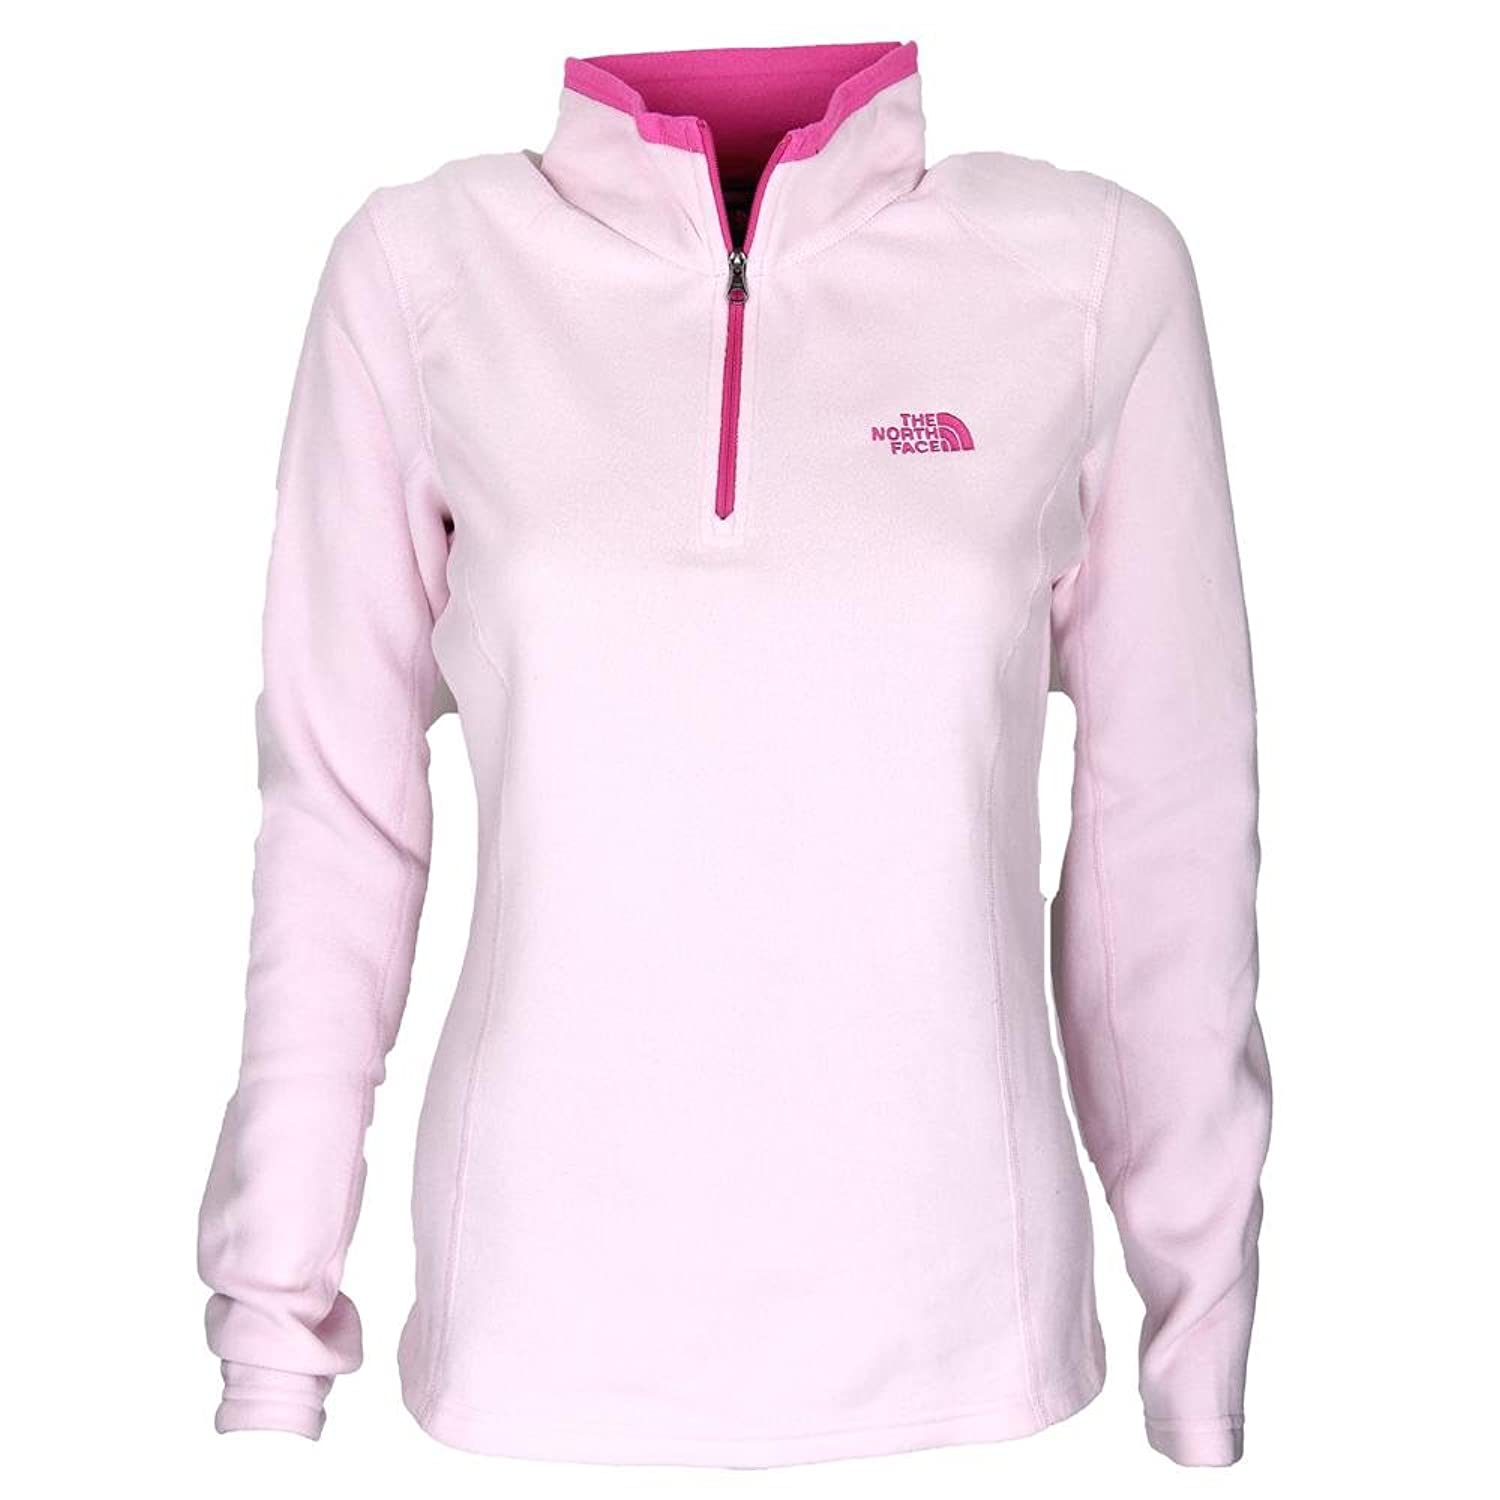 The North Face Women Glacier 1/4 Zip Fleece Light Pink/Hot Pink